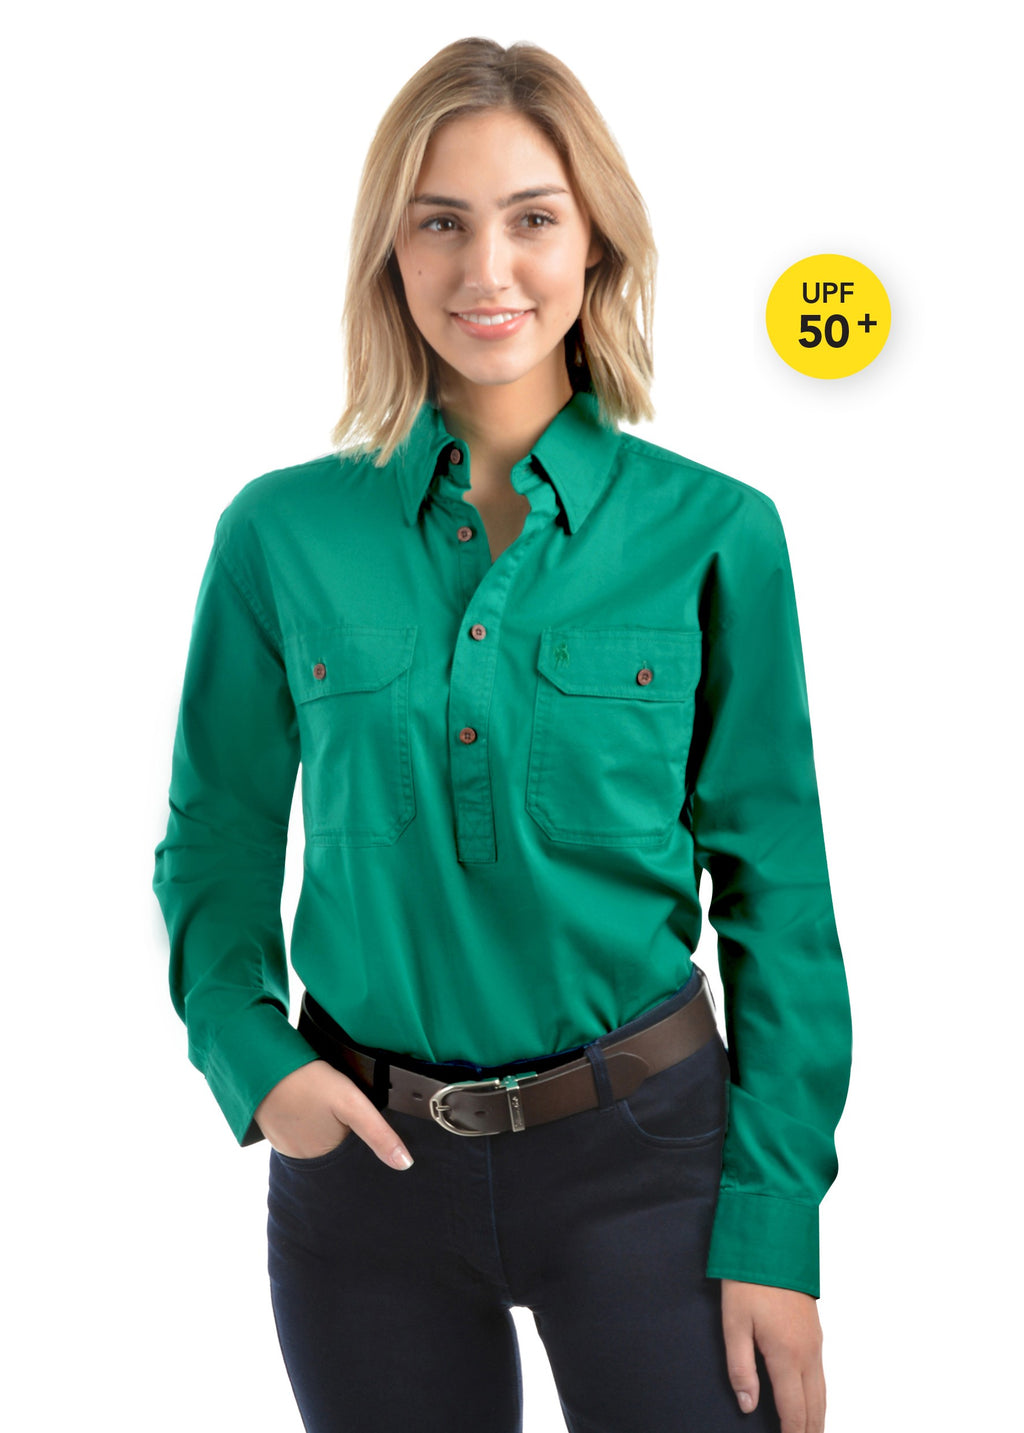 Light Drill Unisex  Half Placket 2 Pocket Long Sleeve Shirt - Bright Green